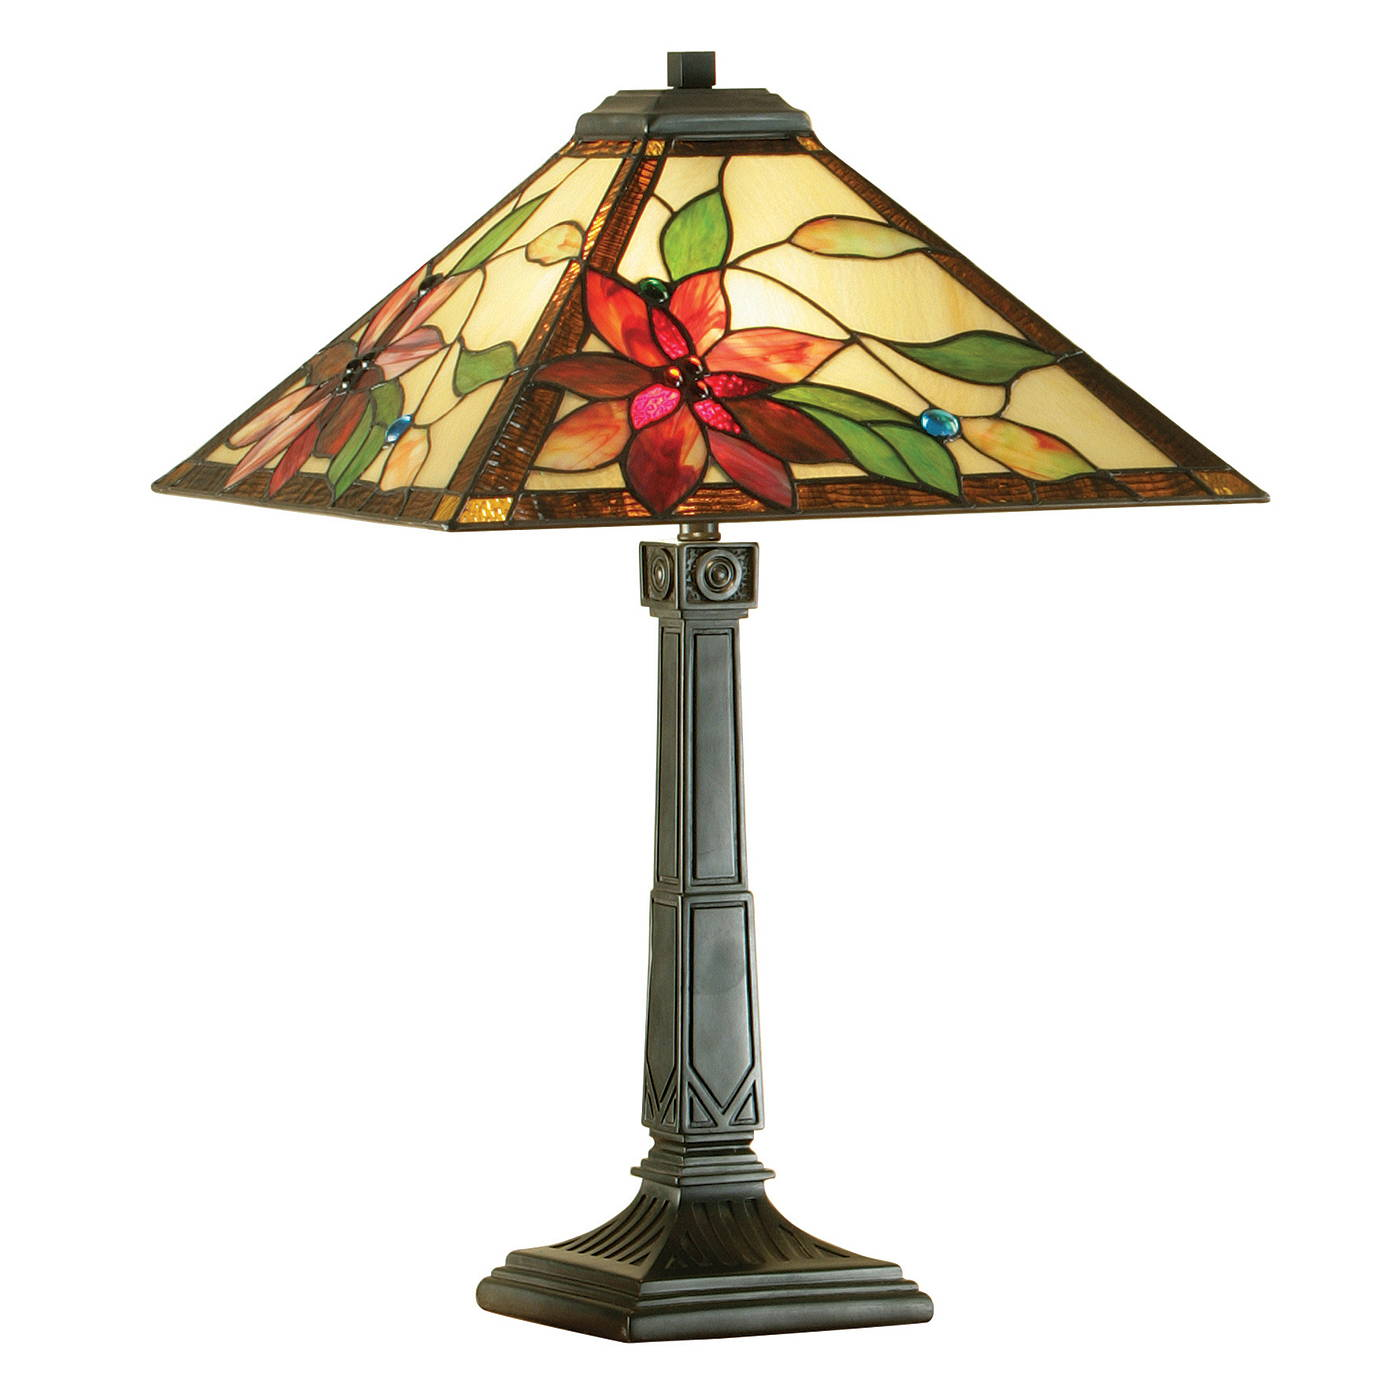 lelani Tiffany Lamps